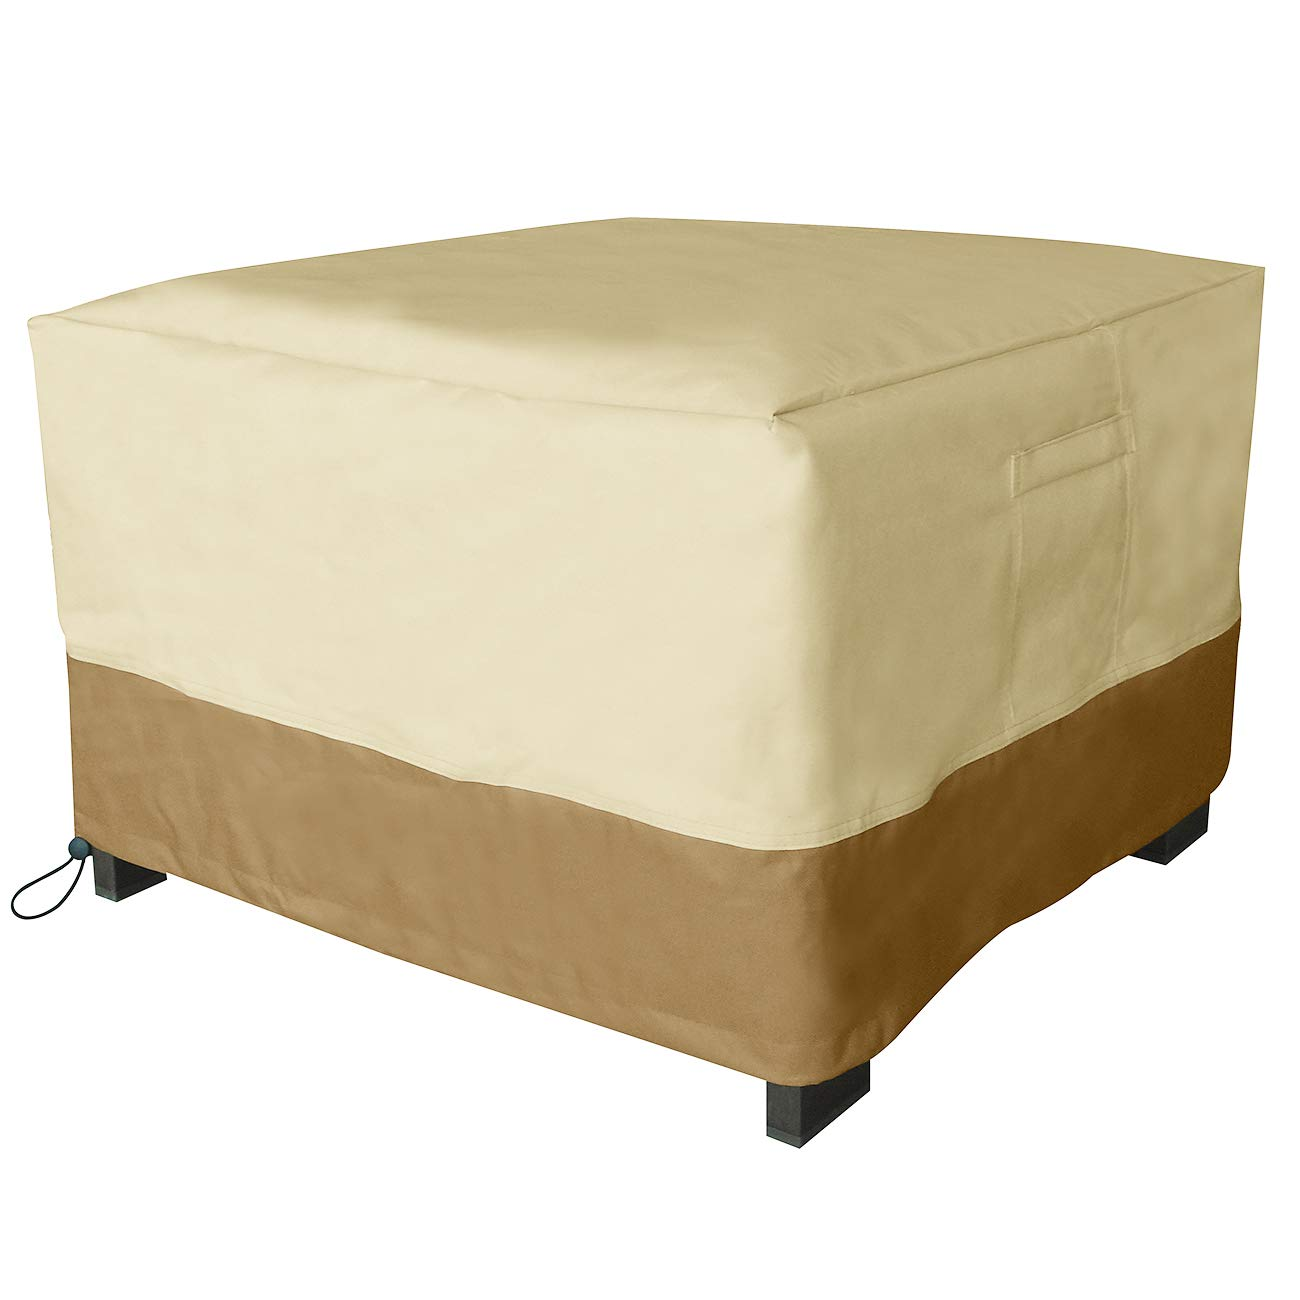 Vanteriam Square Patio Ottoman/Footrest/Side Table Cover-Durable and Waterproof Outdoor Furniture Cover, Size 32''(L) x 32''(W) x 18''(H)